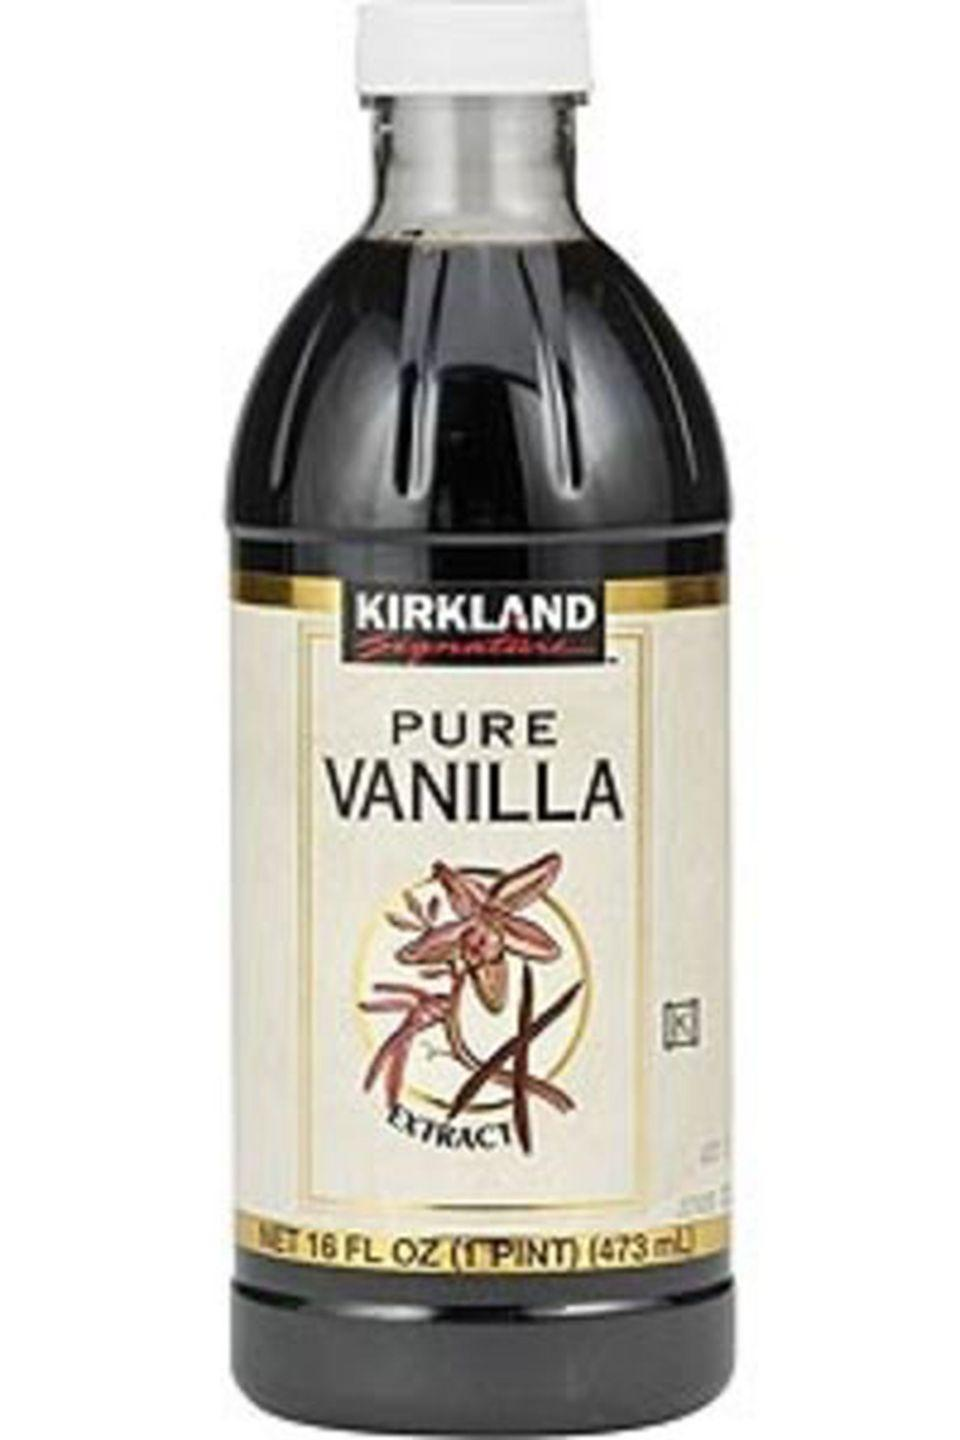 """<p>Sure, it might seem like a lot of <a href=""""https://www.costcobusinessdelivery.com/Pure-Vanilla-Extract%2C-16-oz.product.100284358.html"""" rel=""""nofollow noopener"""" target=""""_blank"""" data-ylk=""""slk:vanilla"""" class=""""link rapid-noclick-resp"""">vanilla</a> extract, but considering there's enough to last you a million years, it's worth it. </p>"""